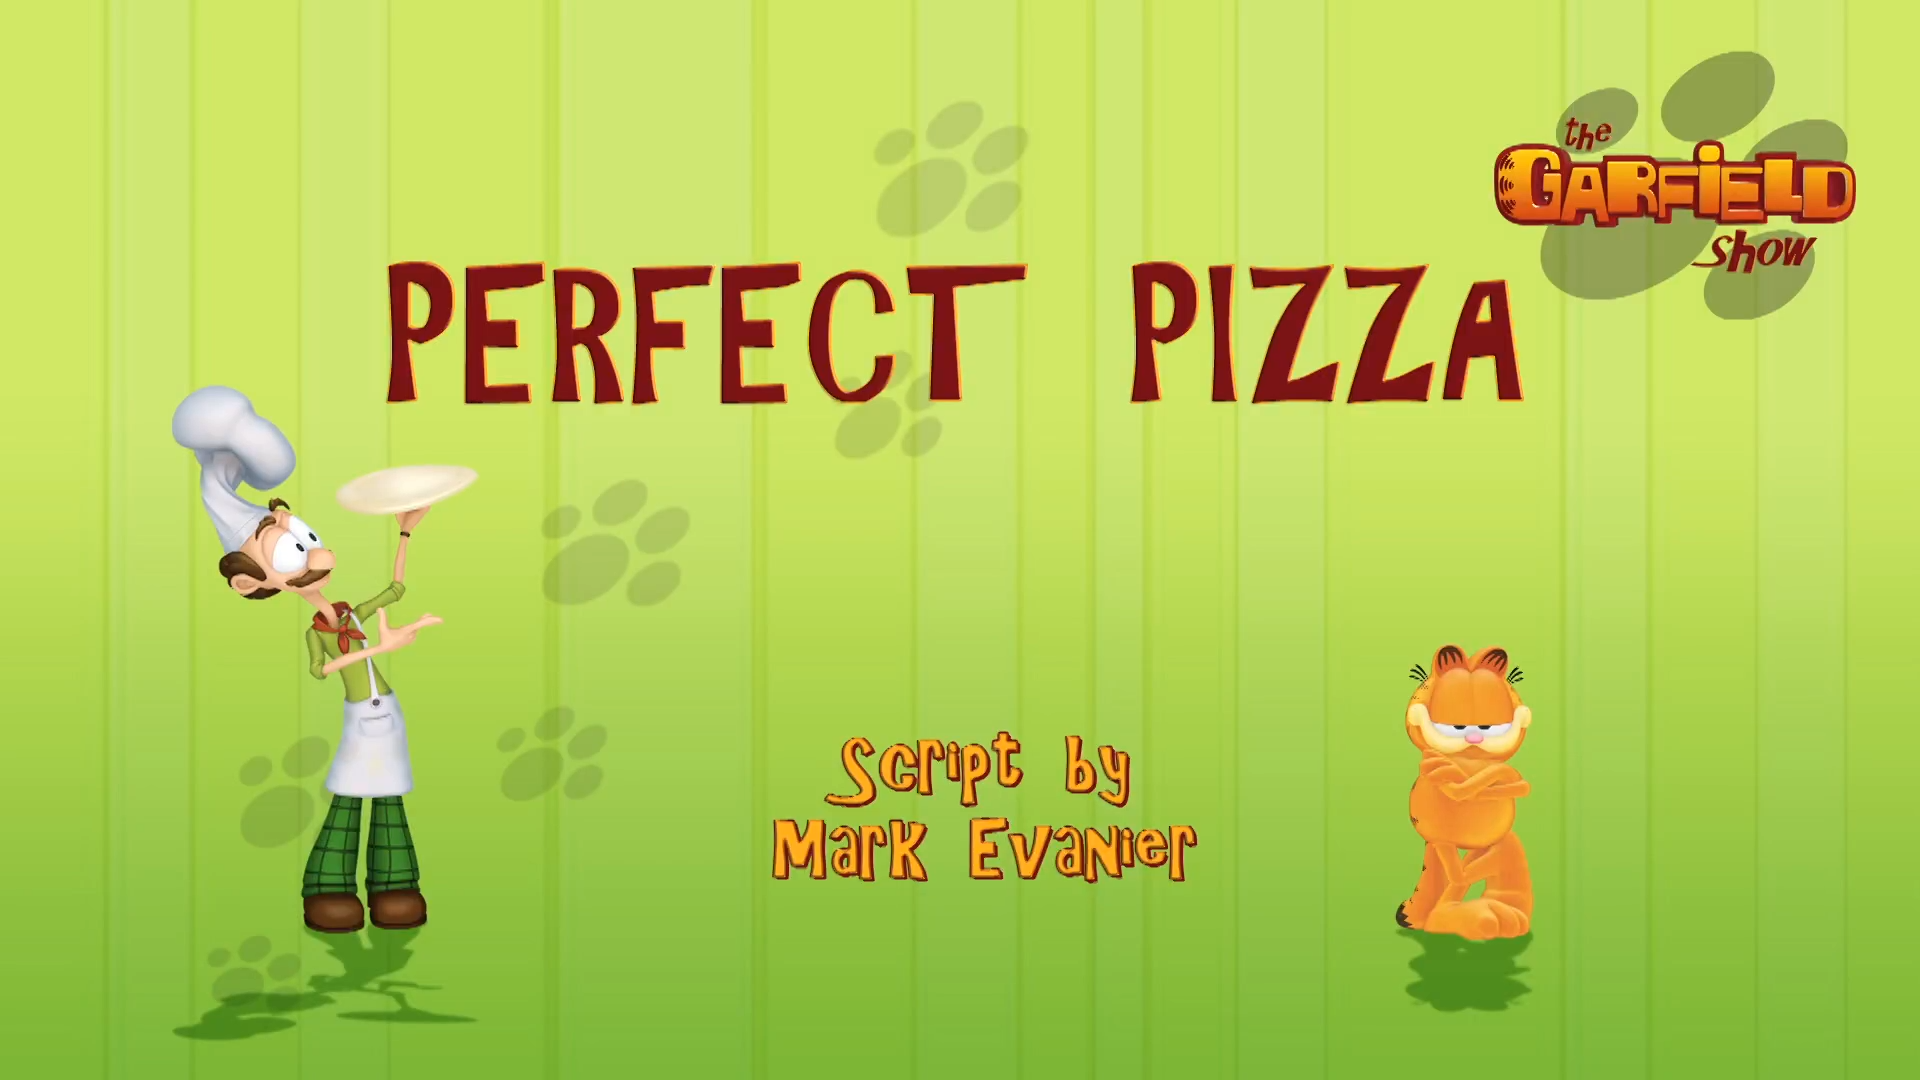 Perfect Pizza Garfield Wiki Fandom